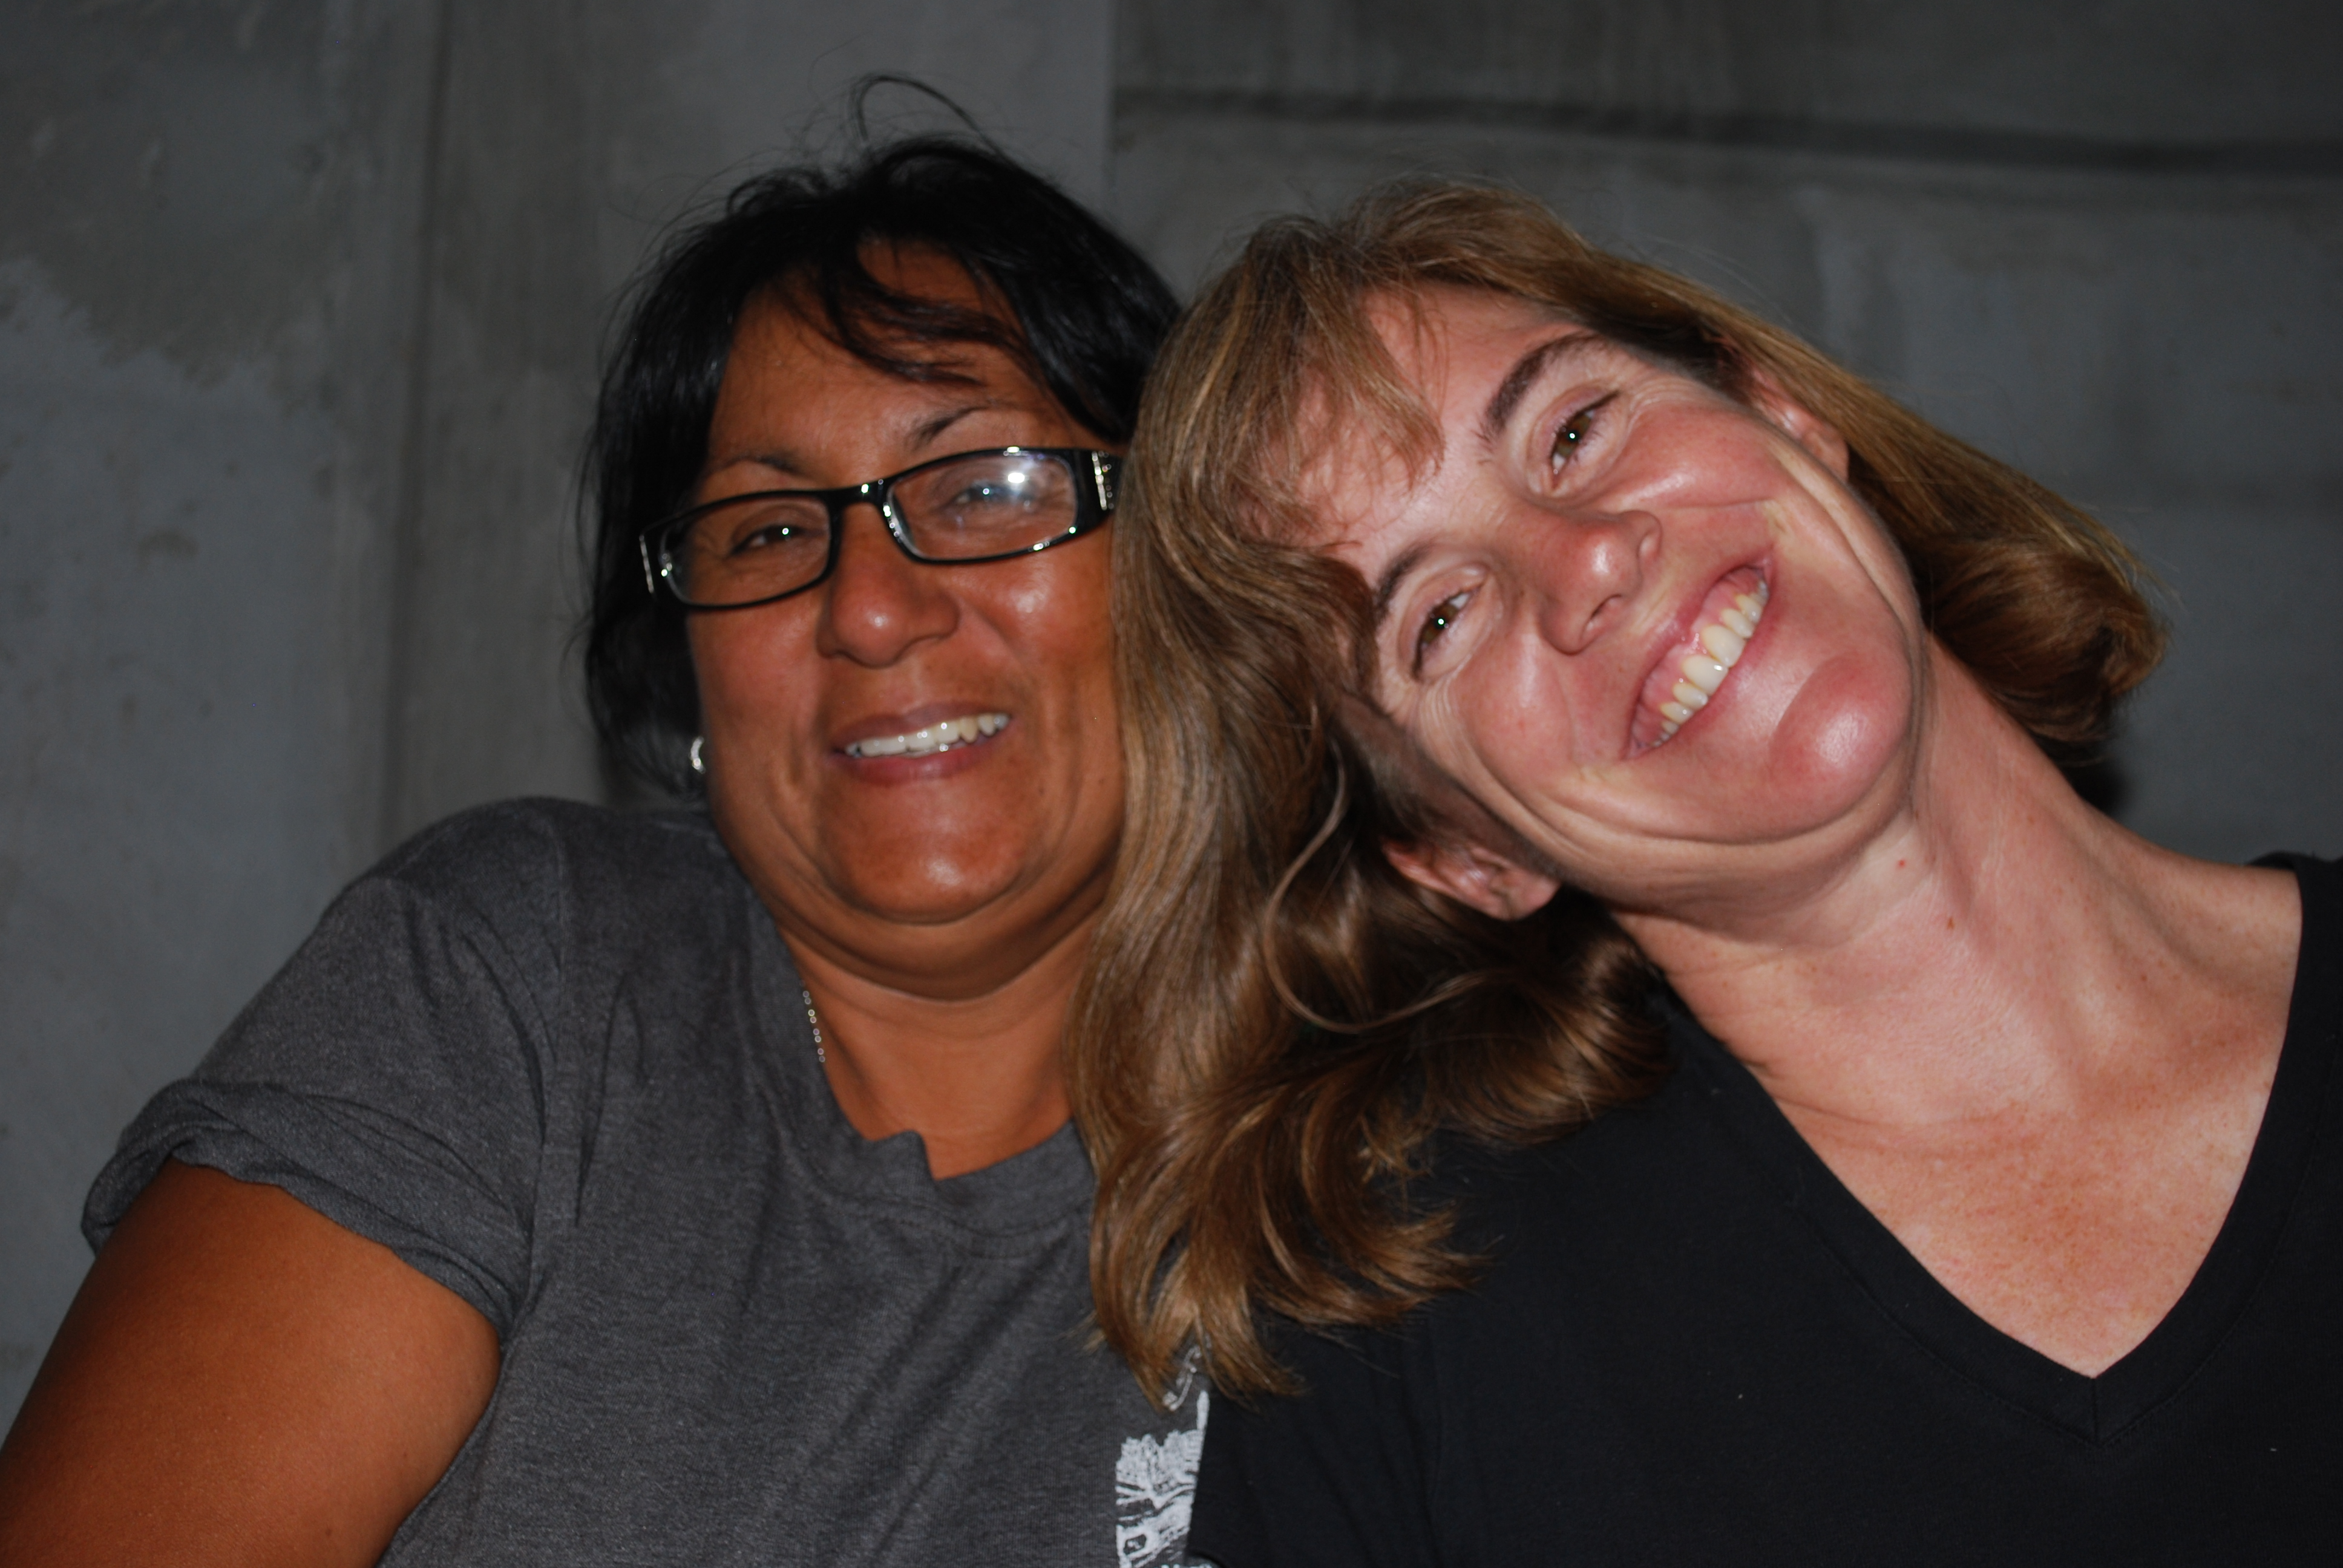 Cathy Huffer, Back2Back Mexico staff, with Meme, a local ministry partner